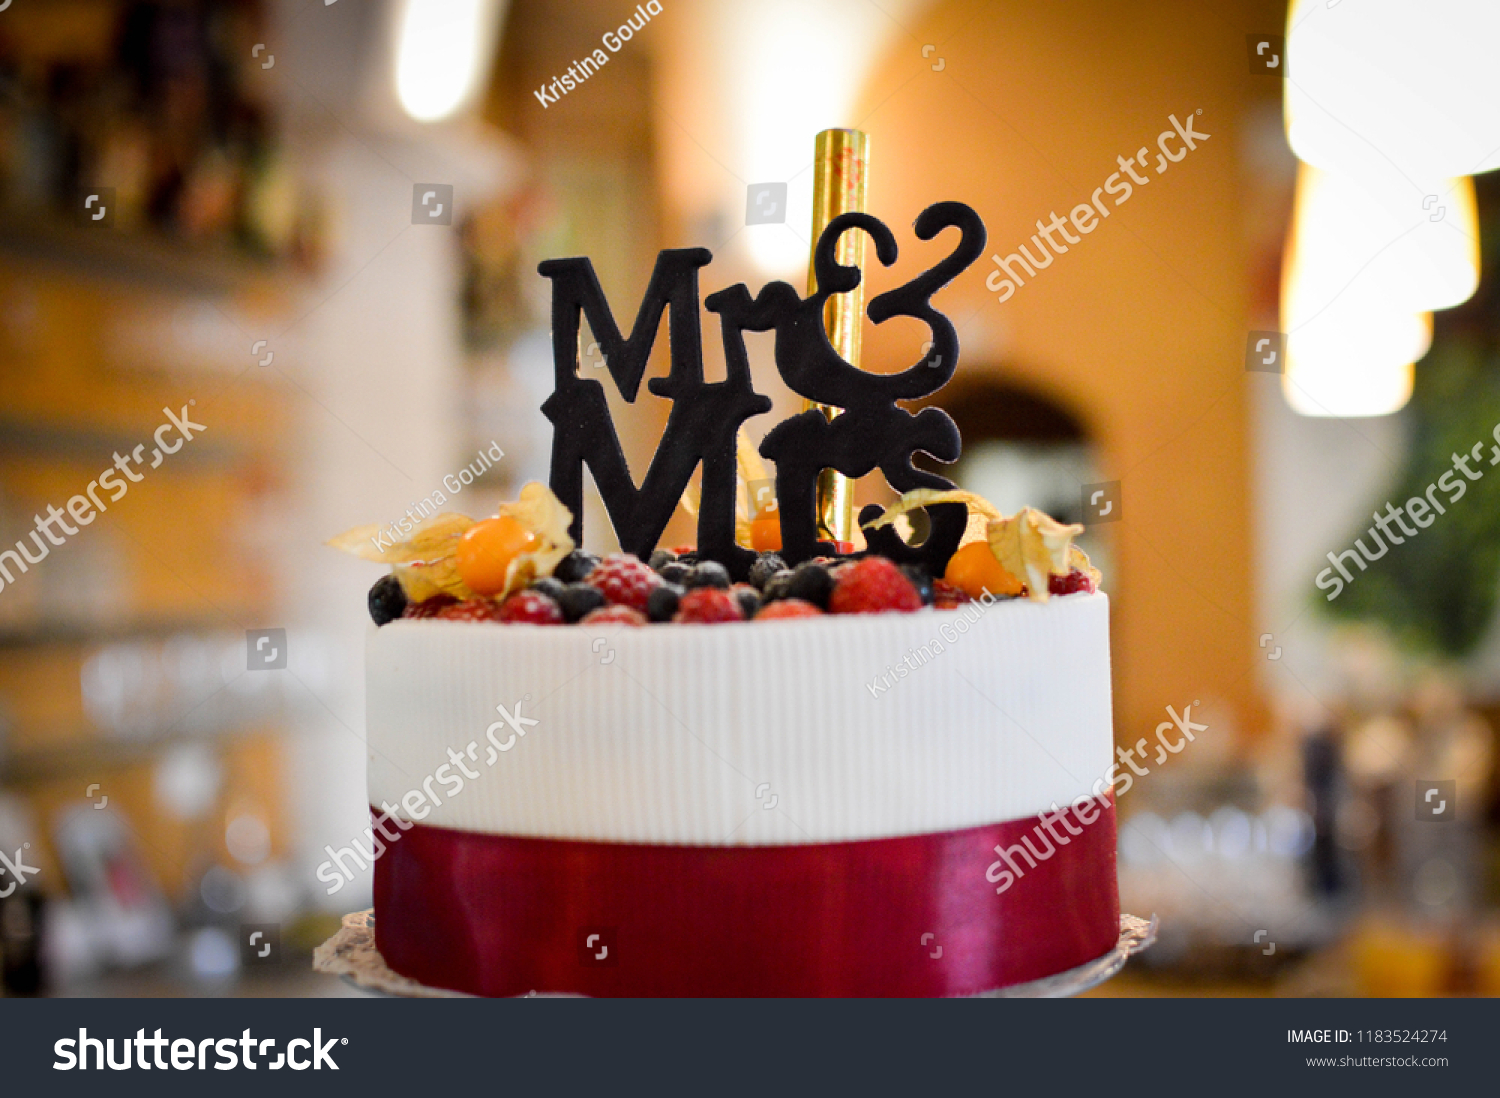 Mrmrs Funny Wedding Cake Fruits On Food And Drink Stock Image 1183524274